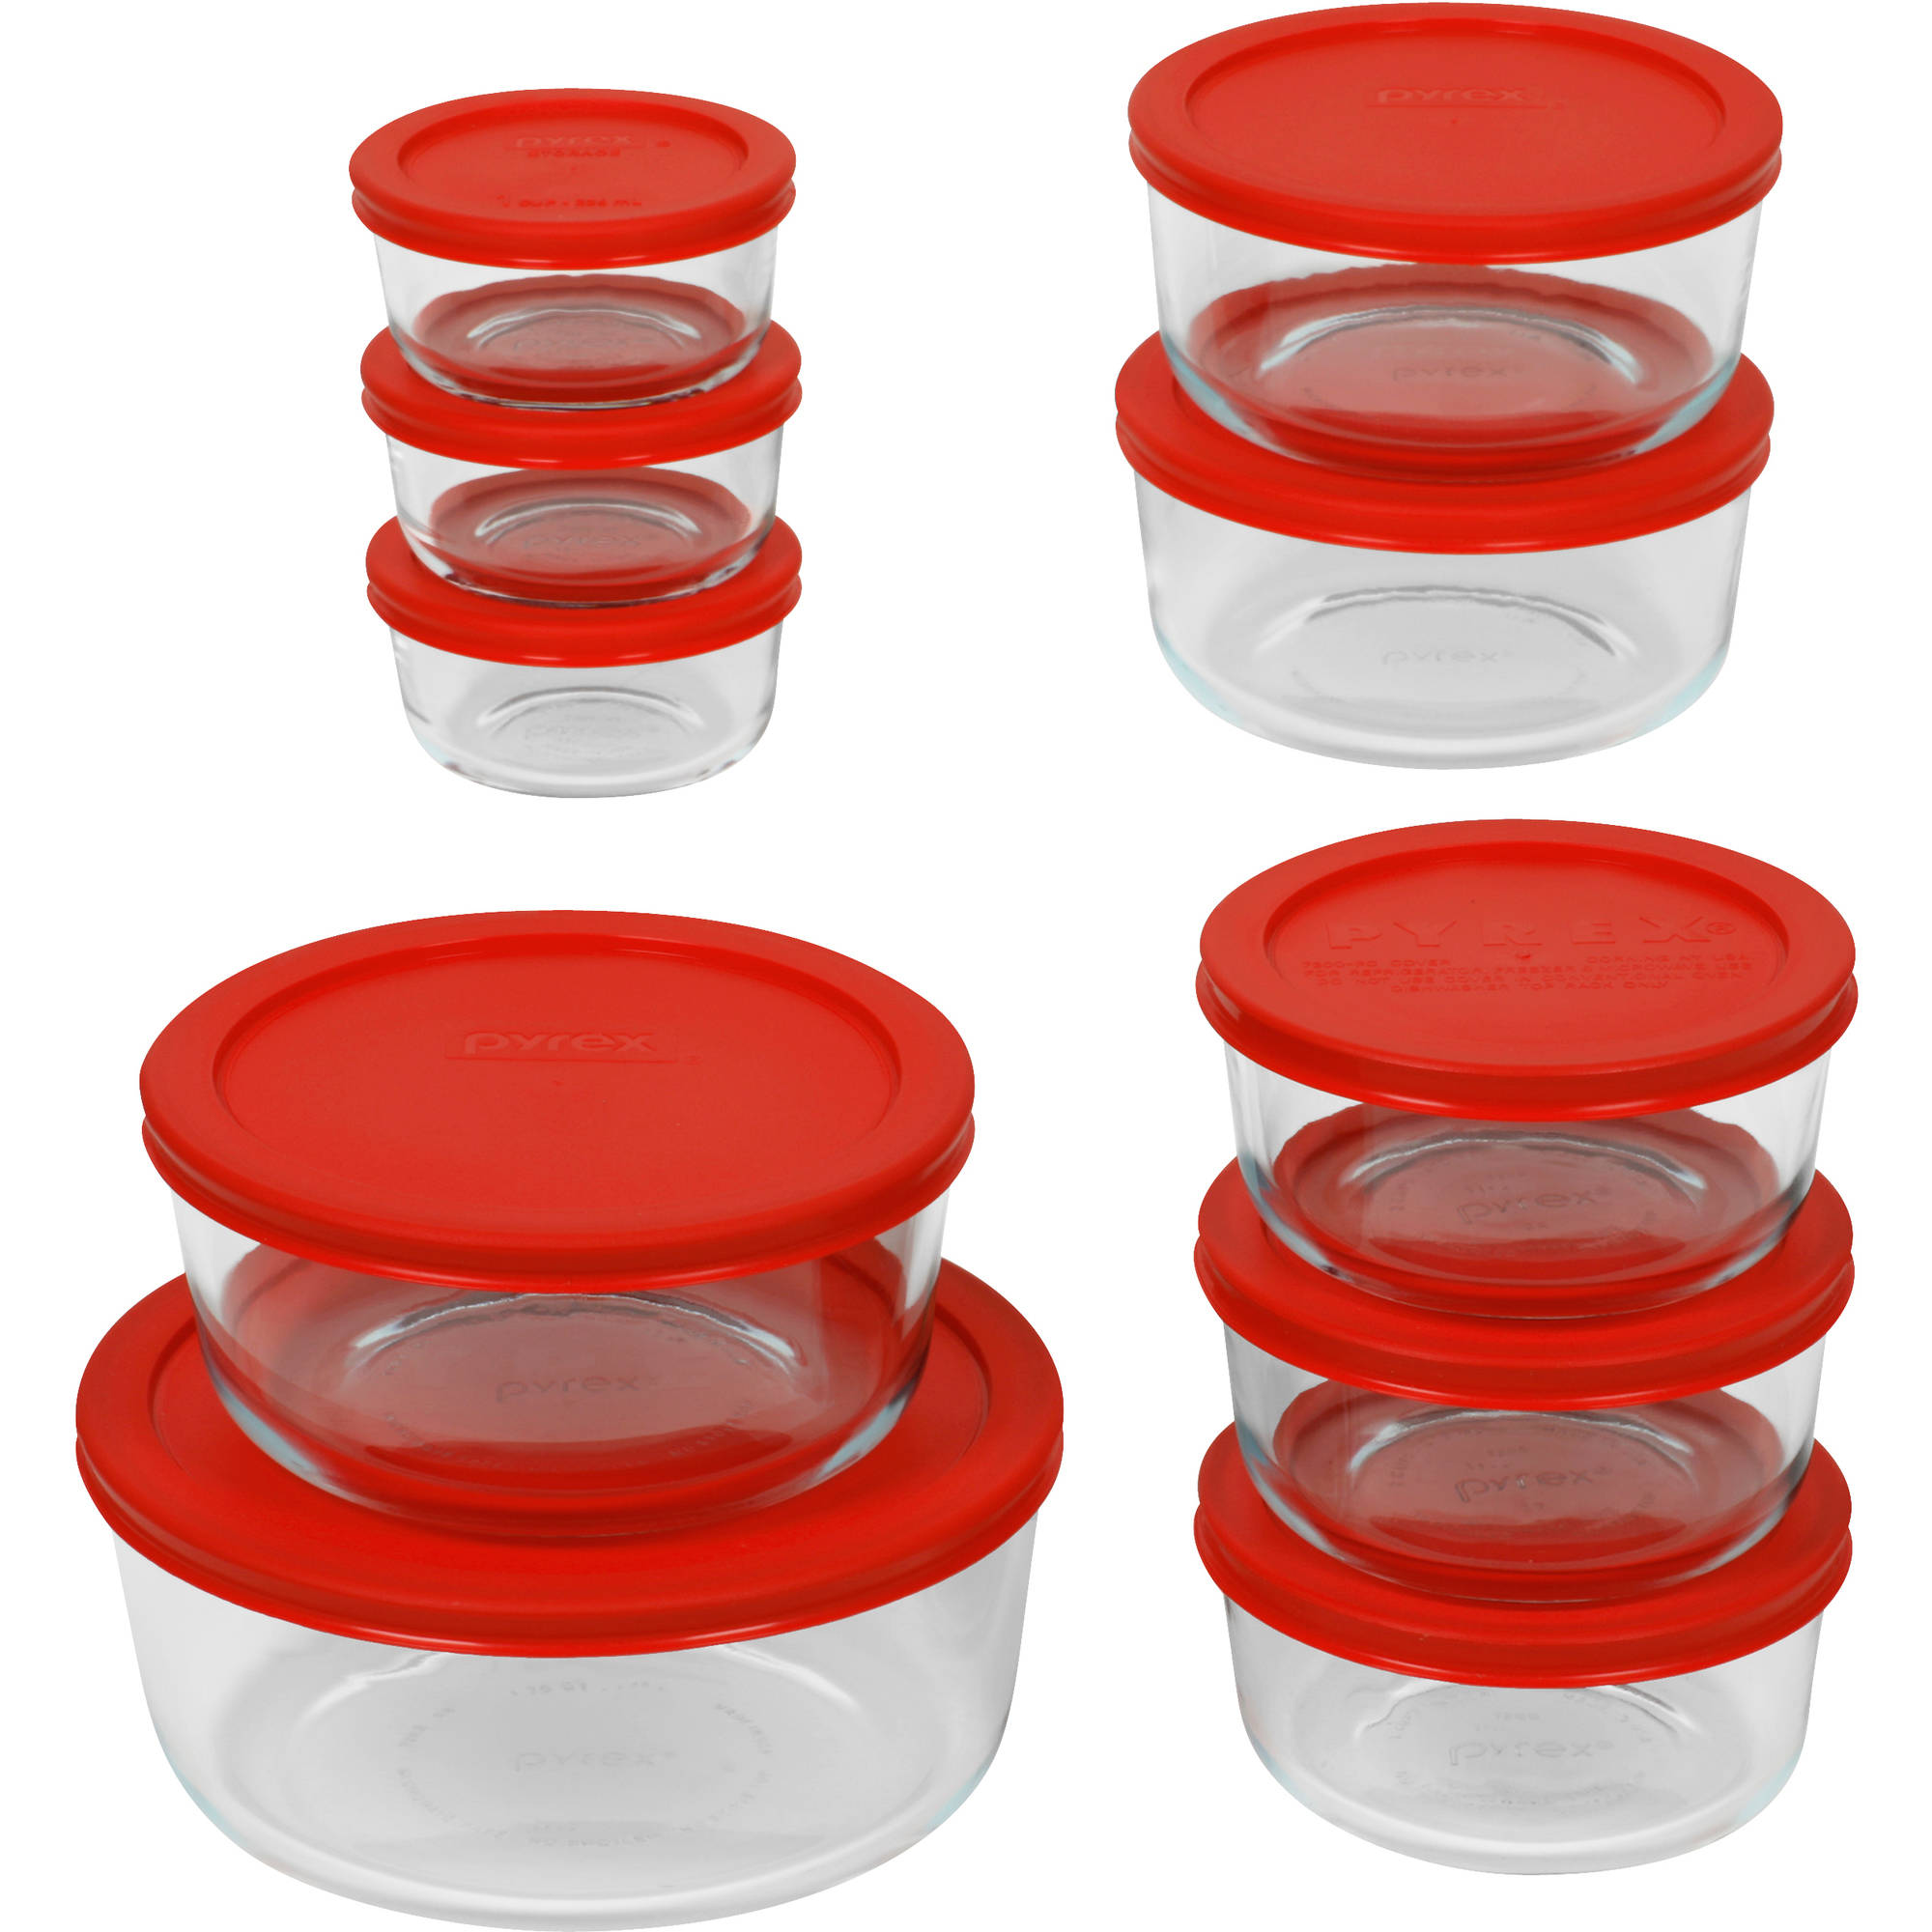 Merveilleux Pyrex 20 Pc Storage Plus Set. Glass Food Storage, Bakeware, Red    Walmart.com